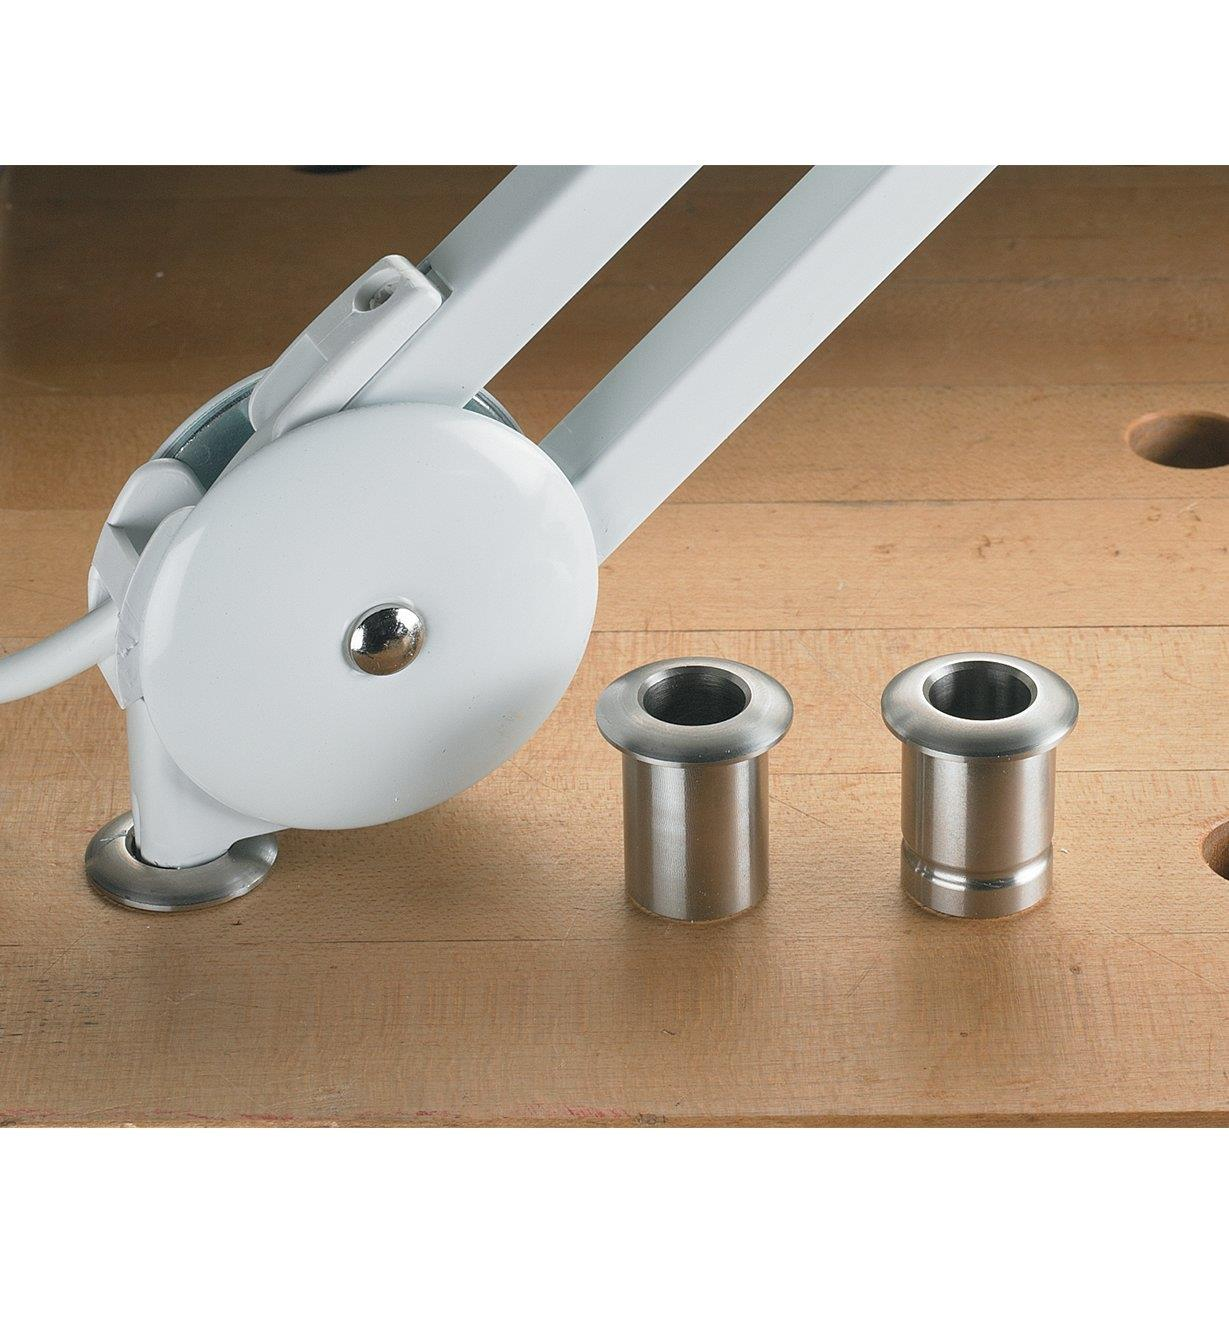 Both sizes of lamp bushing placed on a workbench next to a lamp that is inserted into another bushing in a dog hole